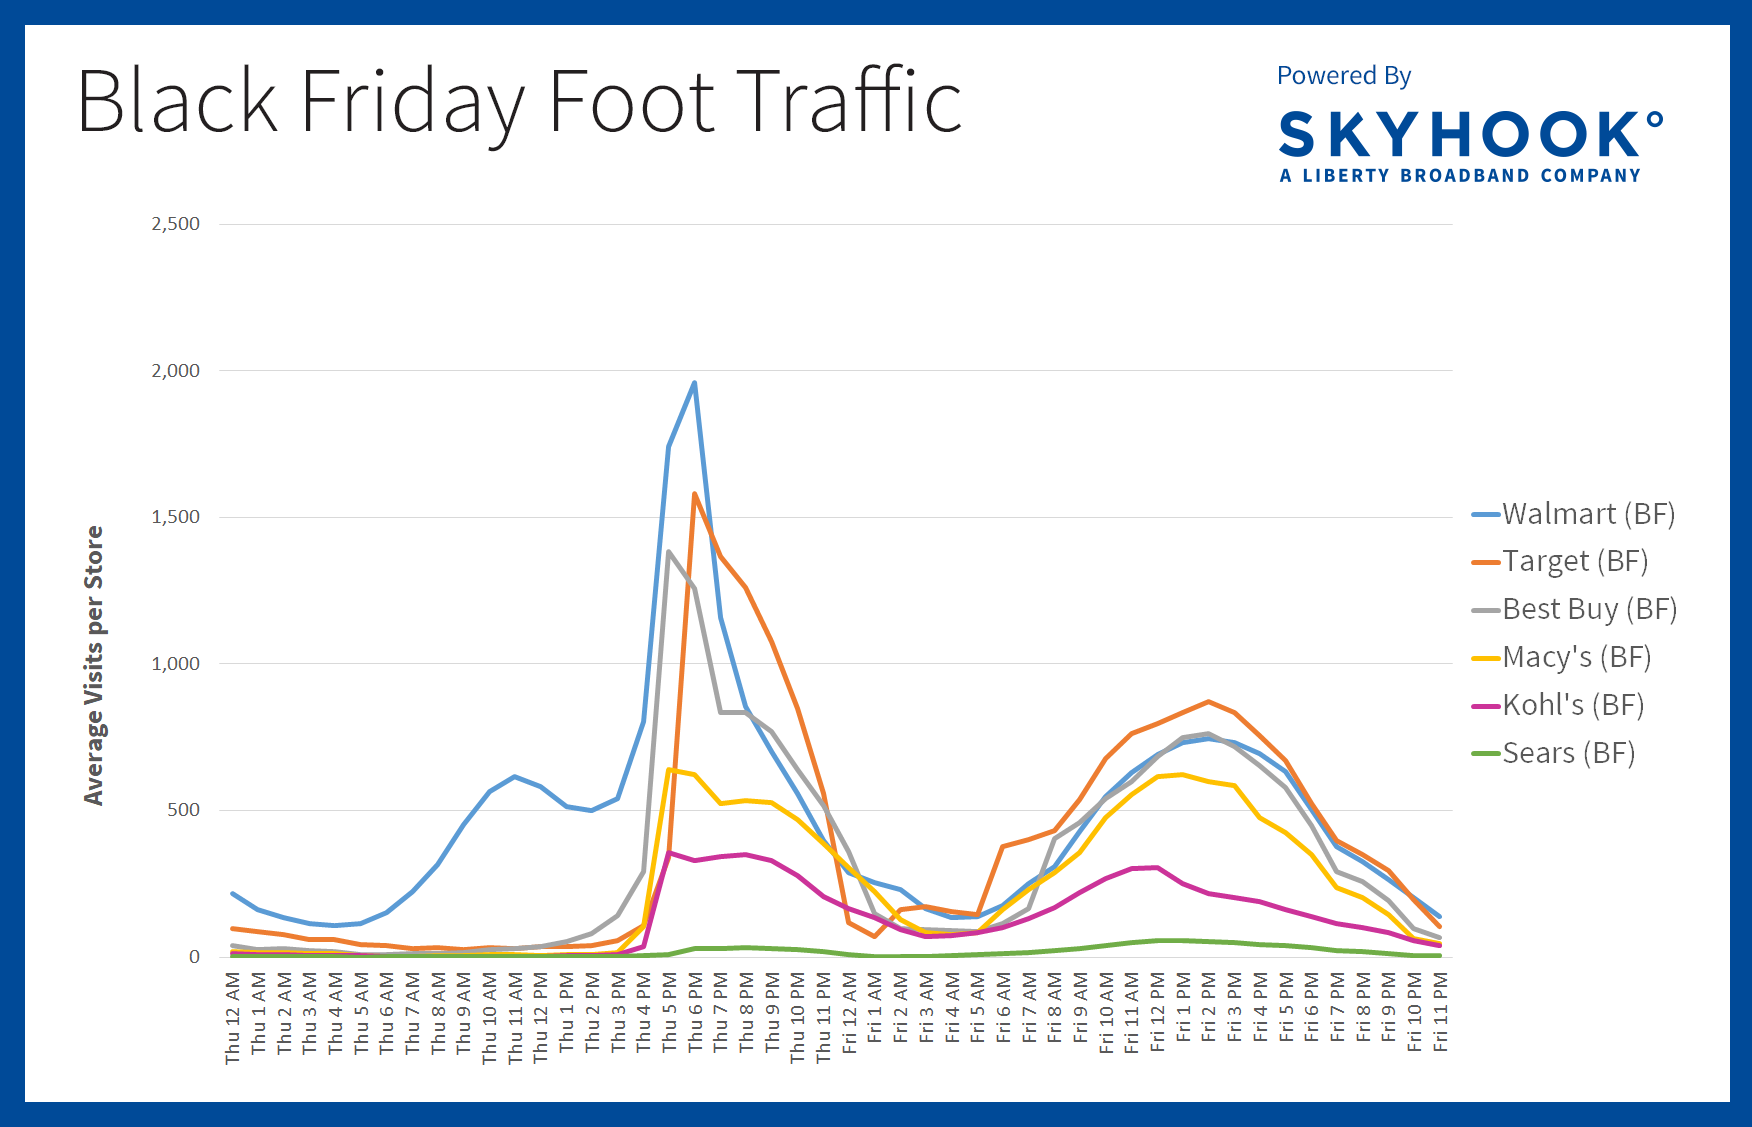 BlackFriday_LineGraph.png